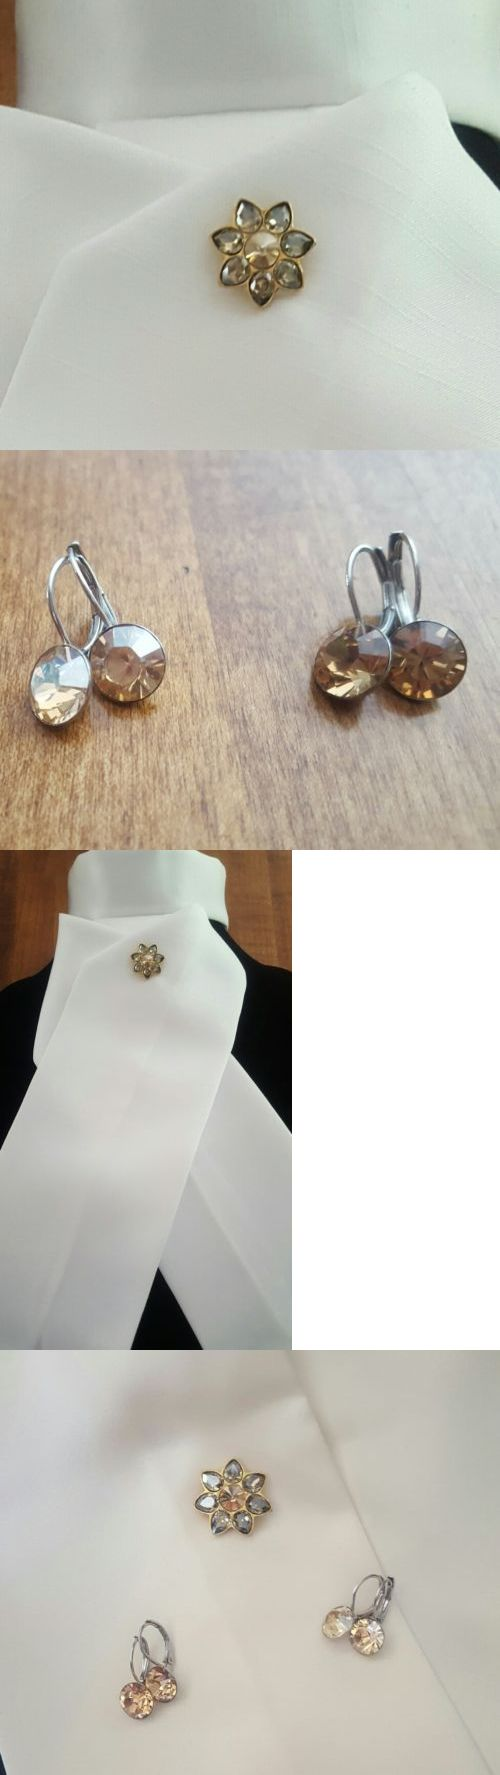 English Show Accessories 160041: Full Show Set: Stock Pin Swarovski Otto Schumacher Earrings And German Stocktie -> BUY IT NOW ONLY: $59 on eBay!